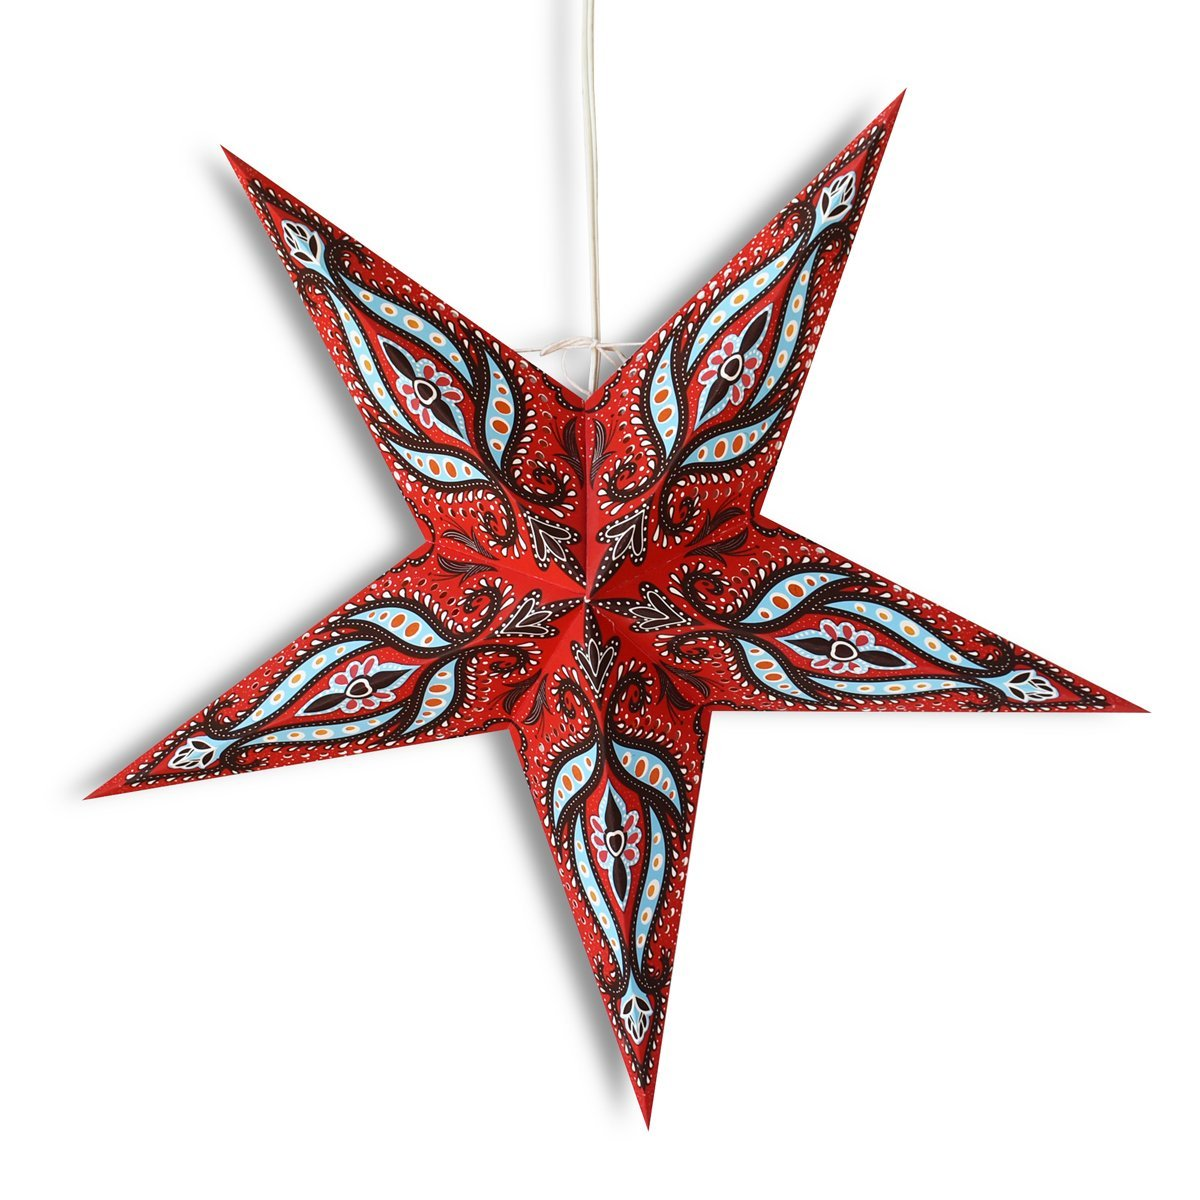 "3-PACK + Cord | 24"" Red / Black Bloom Paper Star Lantern and Lamp Cord Hanging Decoration - PaperLanternStore.com - Paper Lanterns, Decor, Party Lights & More"